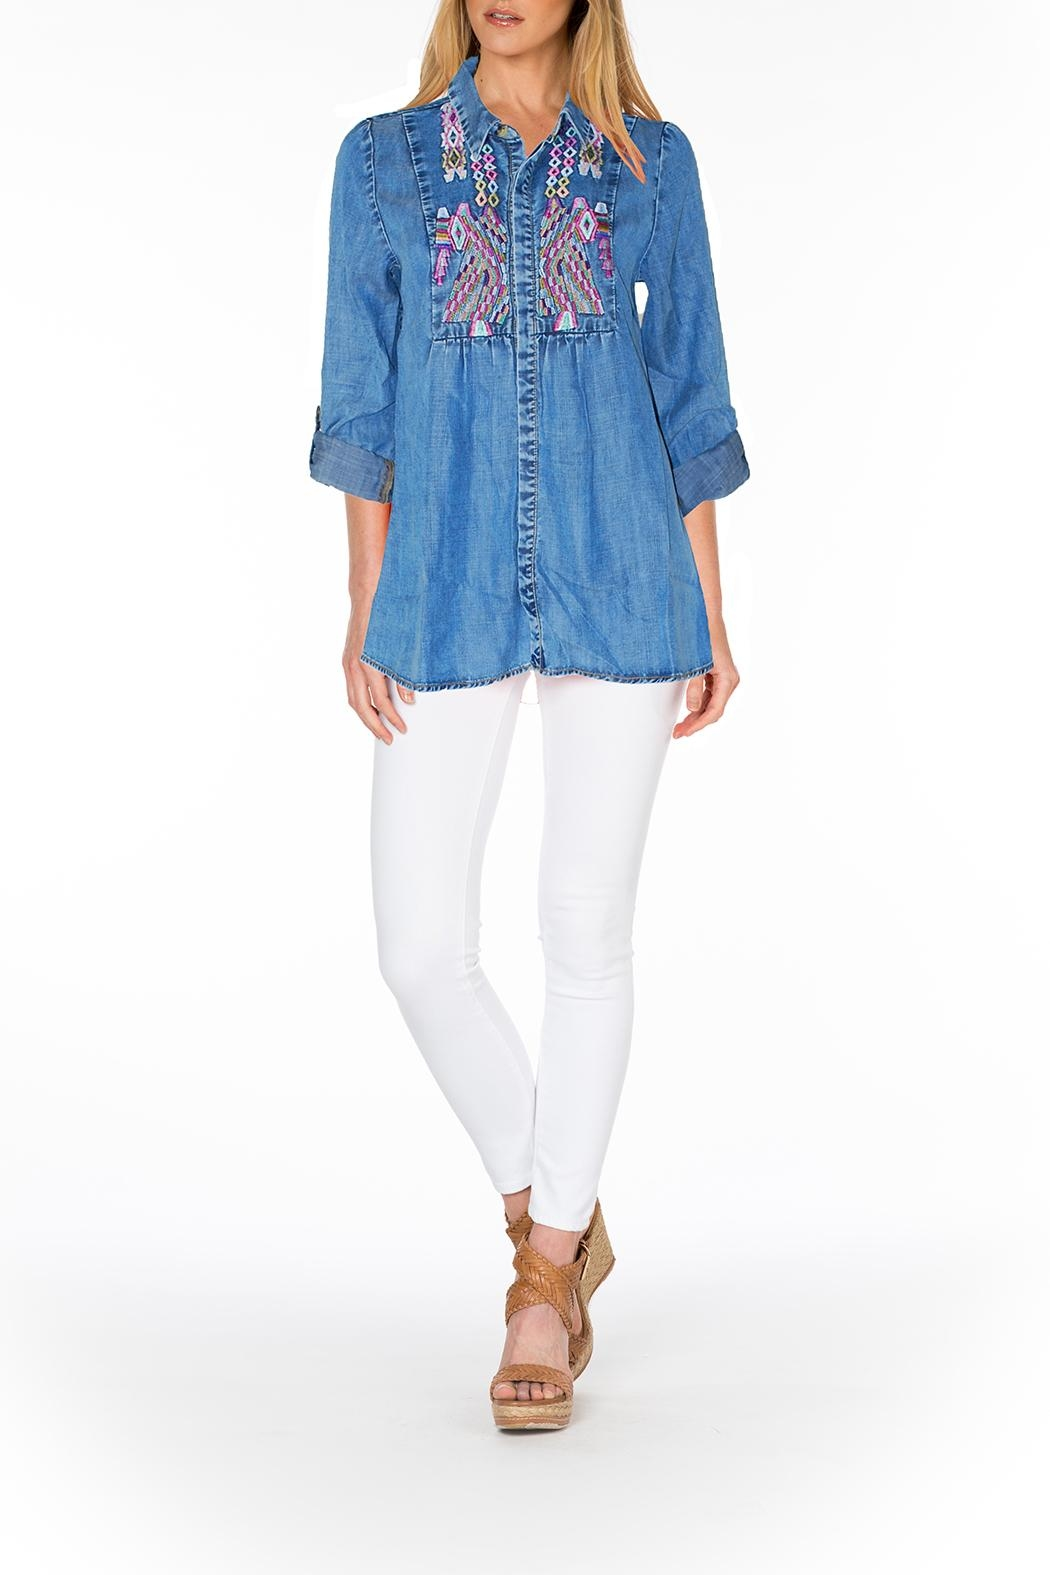 Tolani Embroidered Chambray Tunic - Main Image